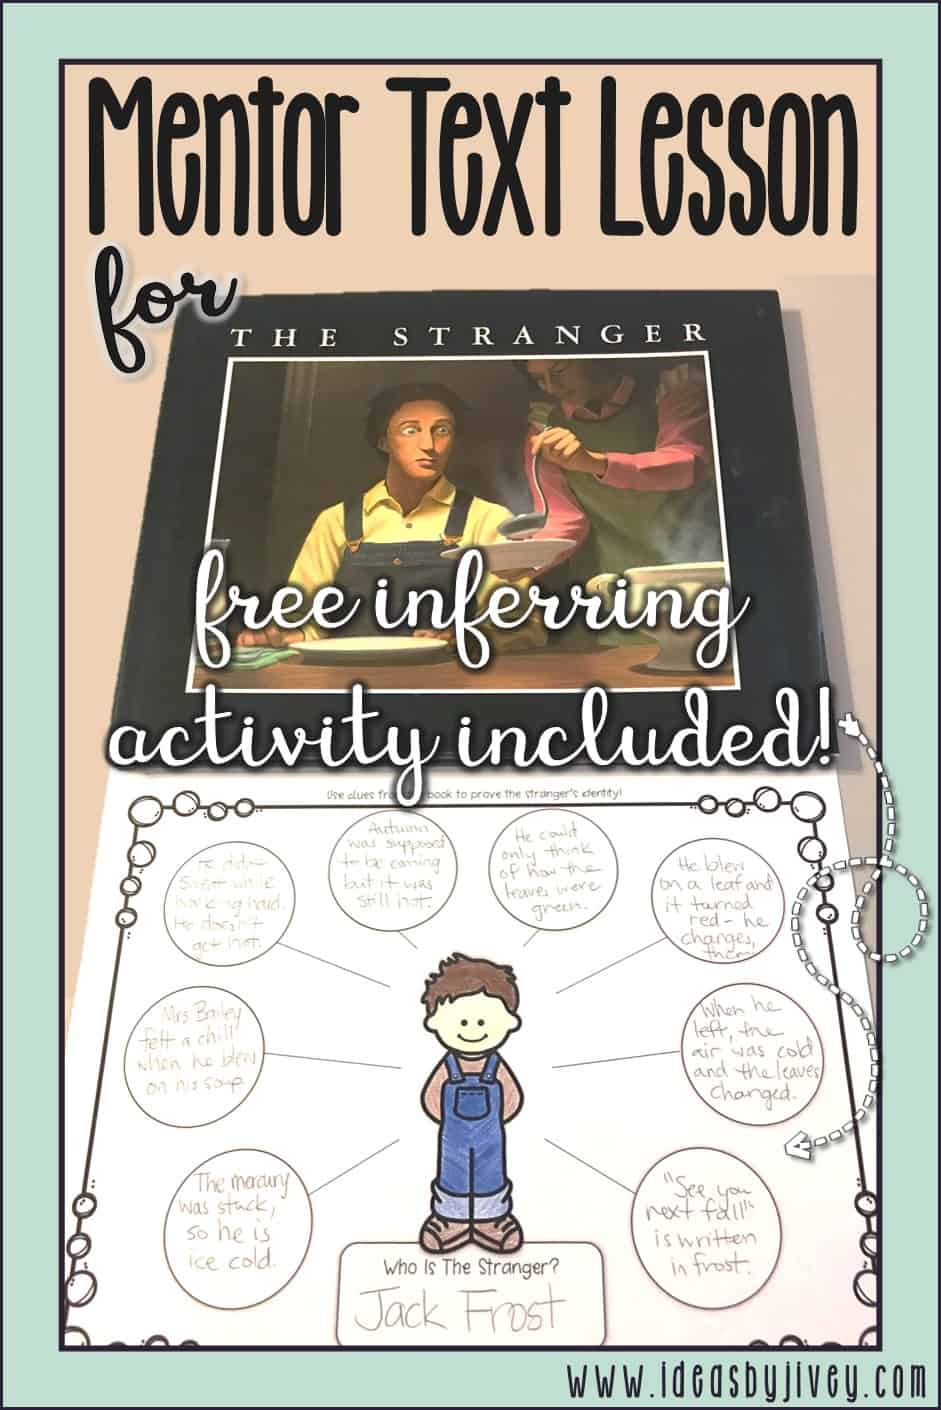 Teach students to practice inferring with this mentor text lesson using the mentor text The Stranger by Chris Van Allsburg.